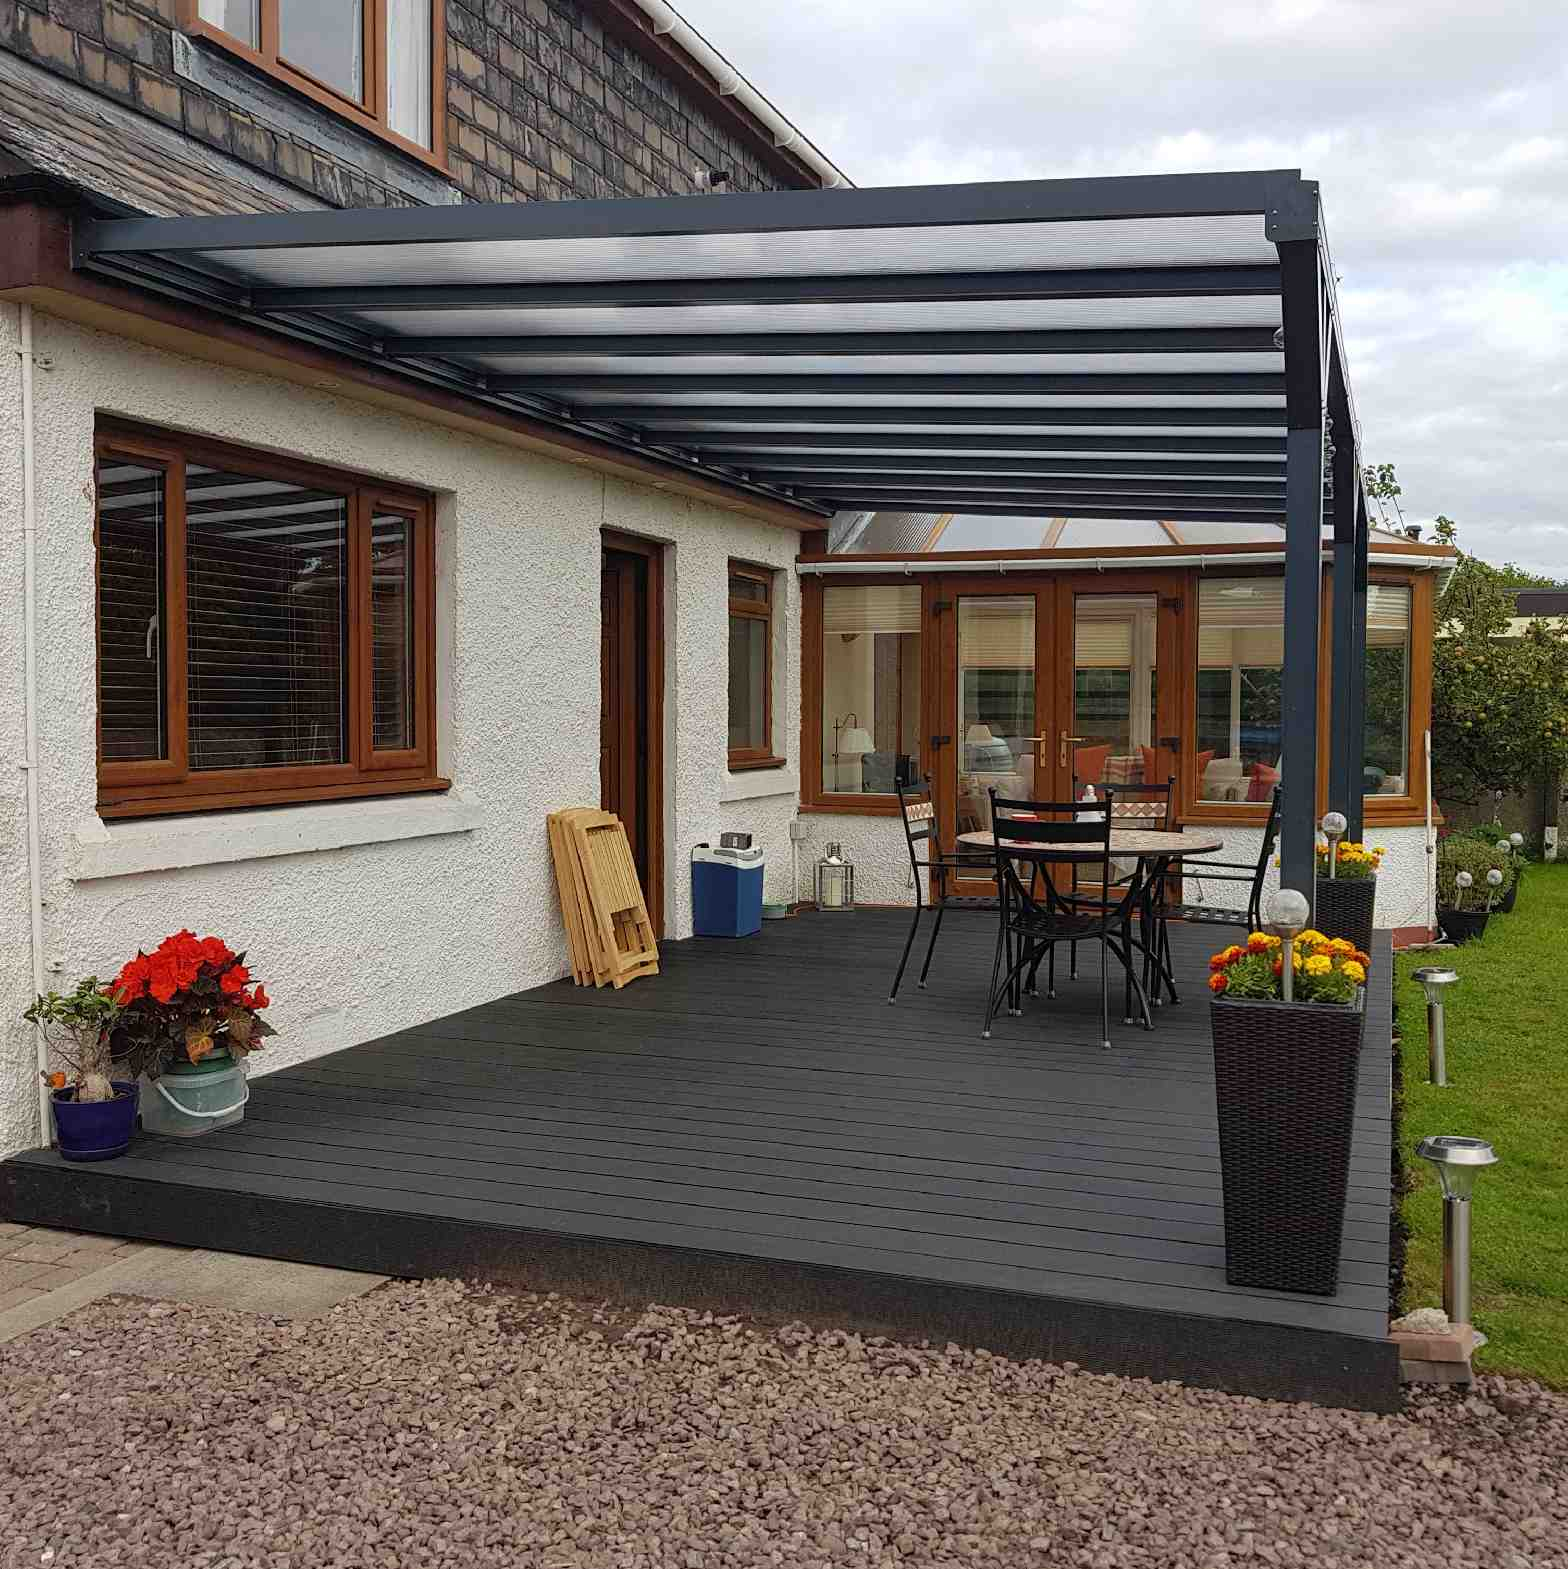 Buy Omega Verandah, Anthracite Grey, 16mm Polycarbonate Glazing - 2.8m (W) x 3.5m (P), (2) Supporting Posts online today